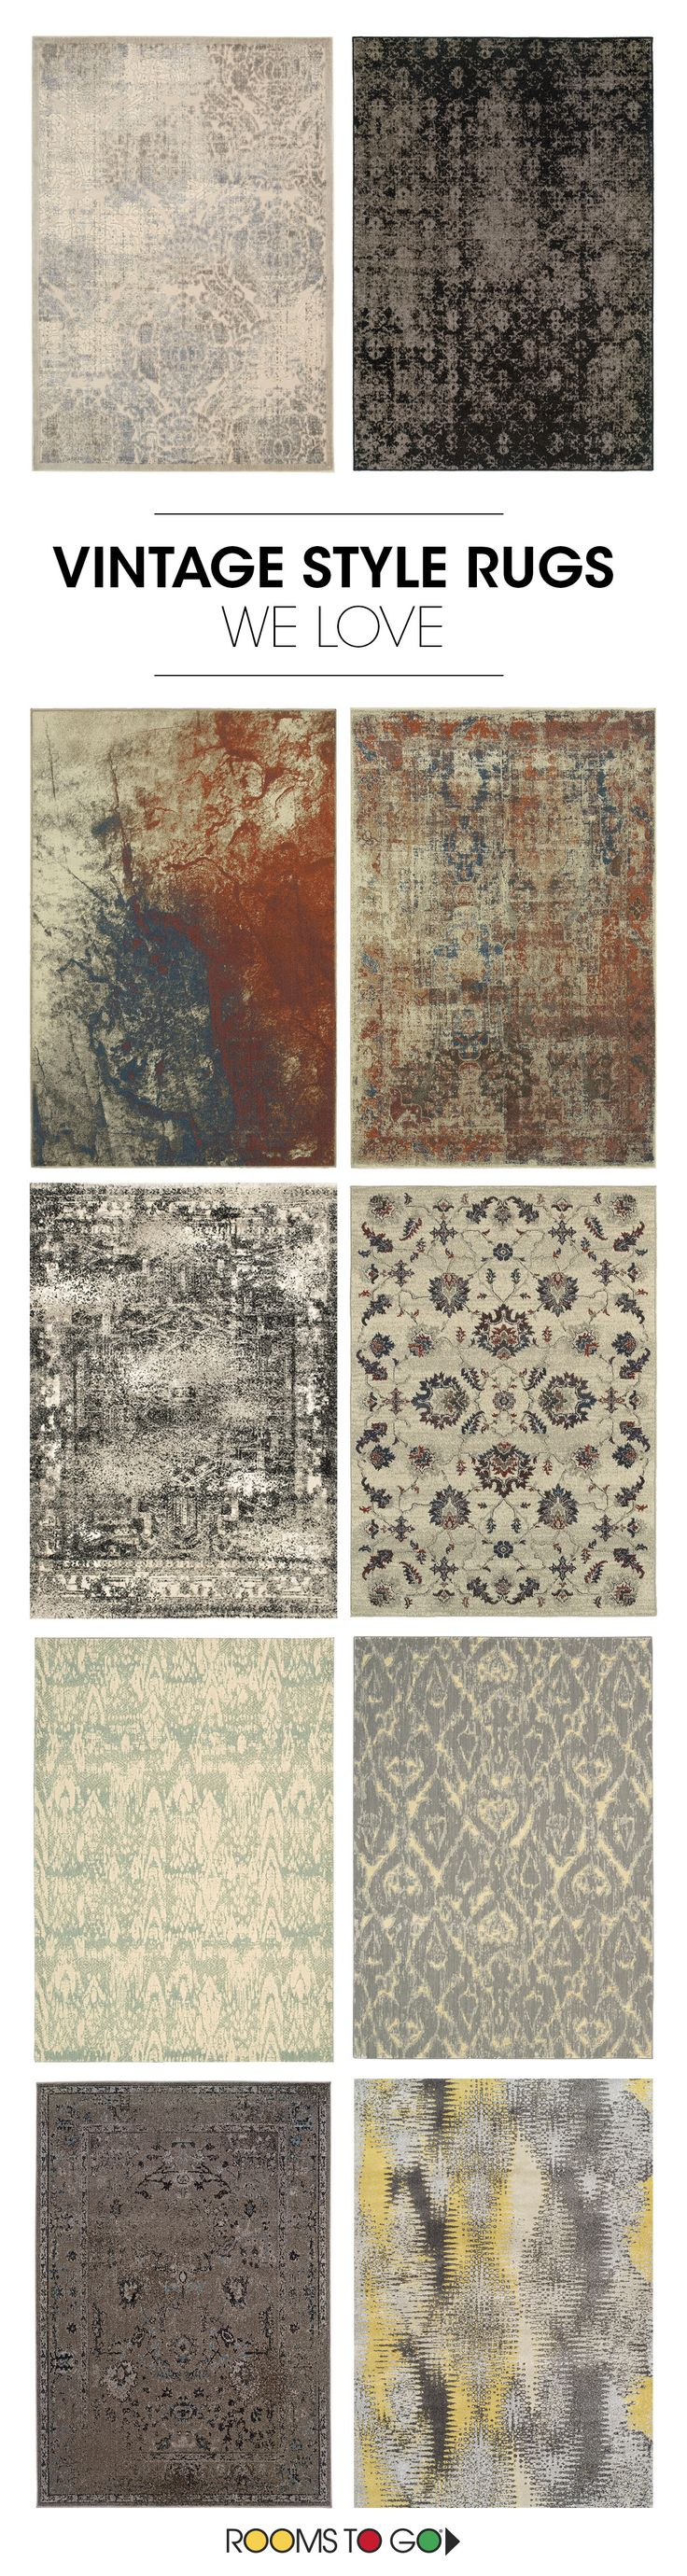 A good rug adds style and contrast to a room. Our rugs come in an array of colors and patterns and fit casual, contemporary, outdoor, rustic, traditional, and transitional decors.